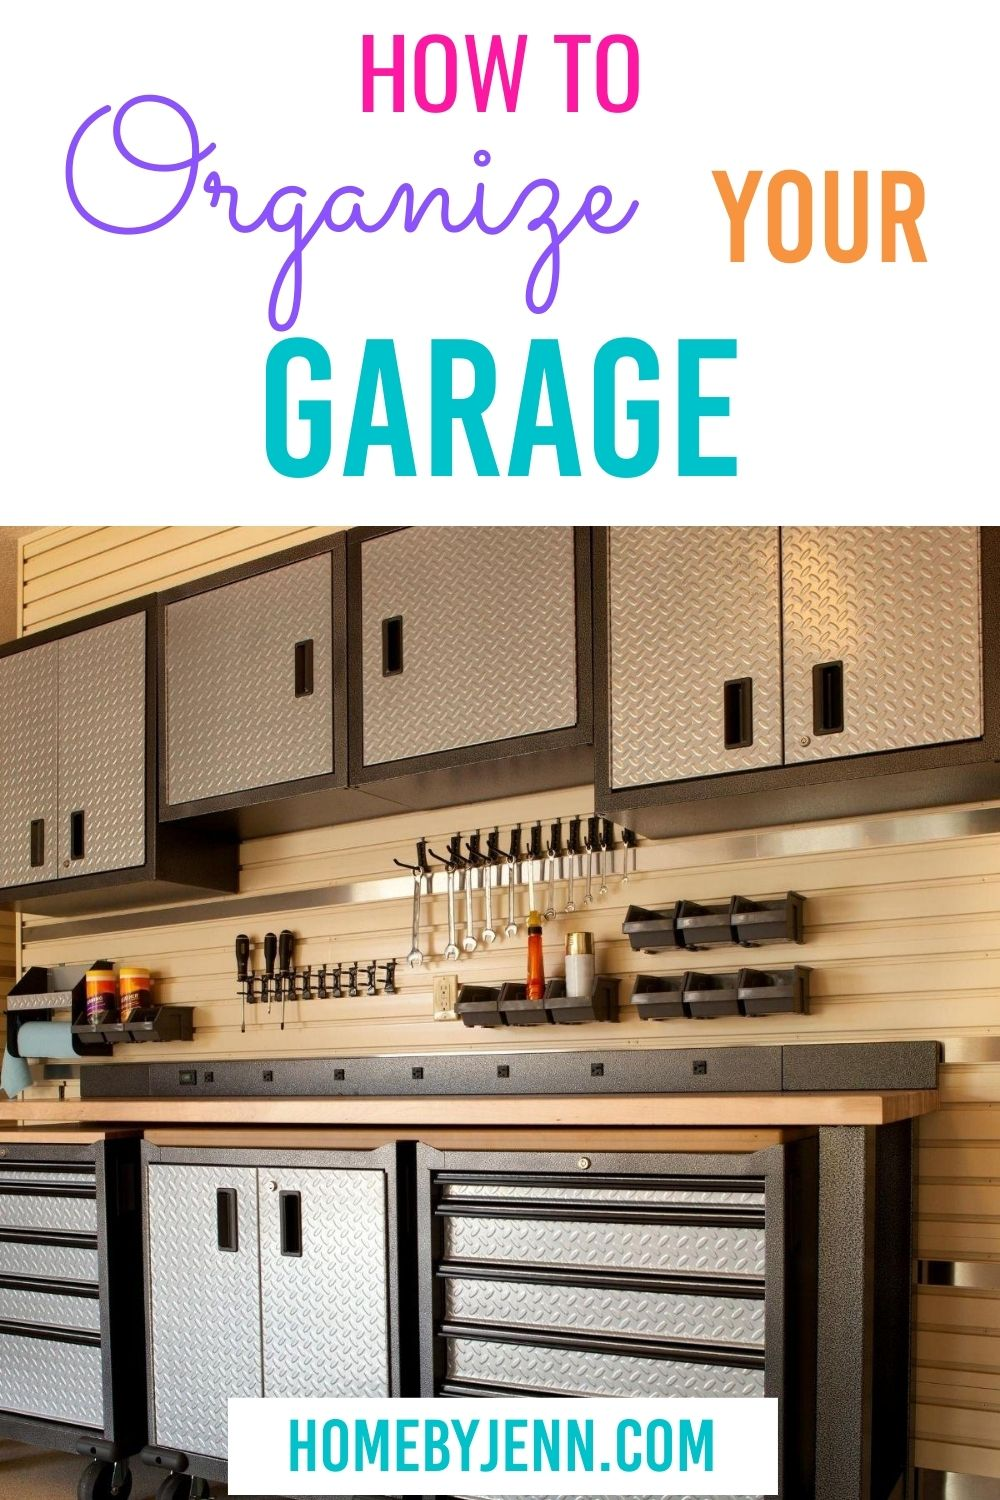 How to organize a garage with ease. Garages can be overwhelming to organize but with these organizing tips you can have an organized garage in no time. #organizing #garage #organizedgarage #organizingtips #organizinghacks #organizingtipsandtricks via @homebyjenn